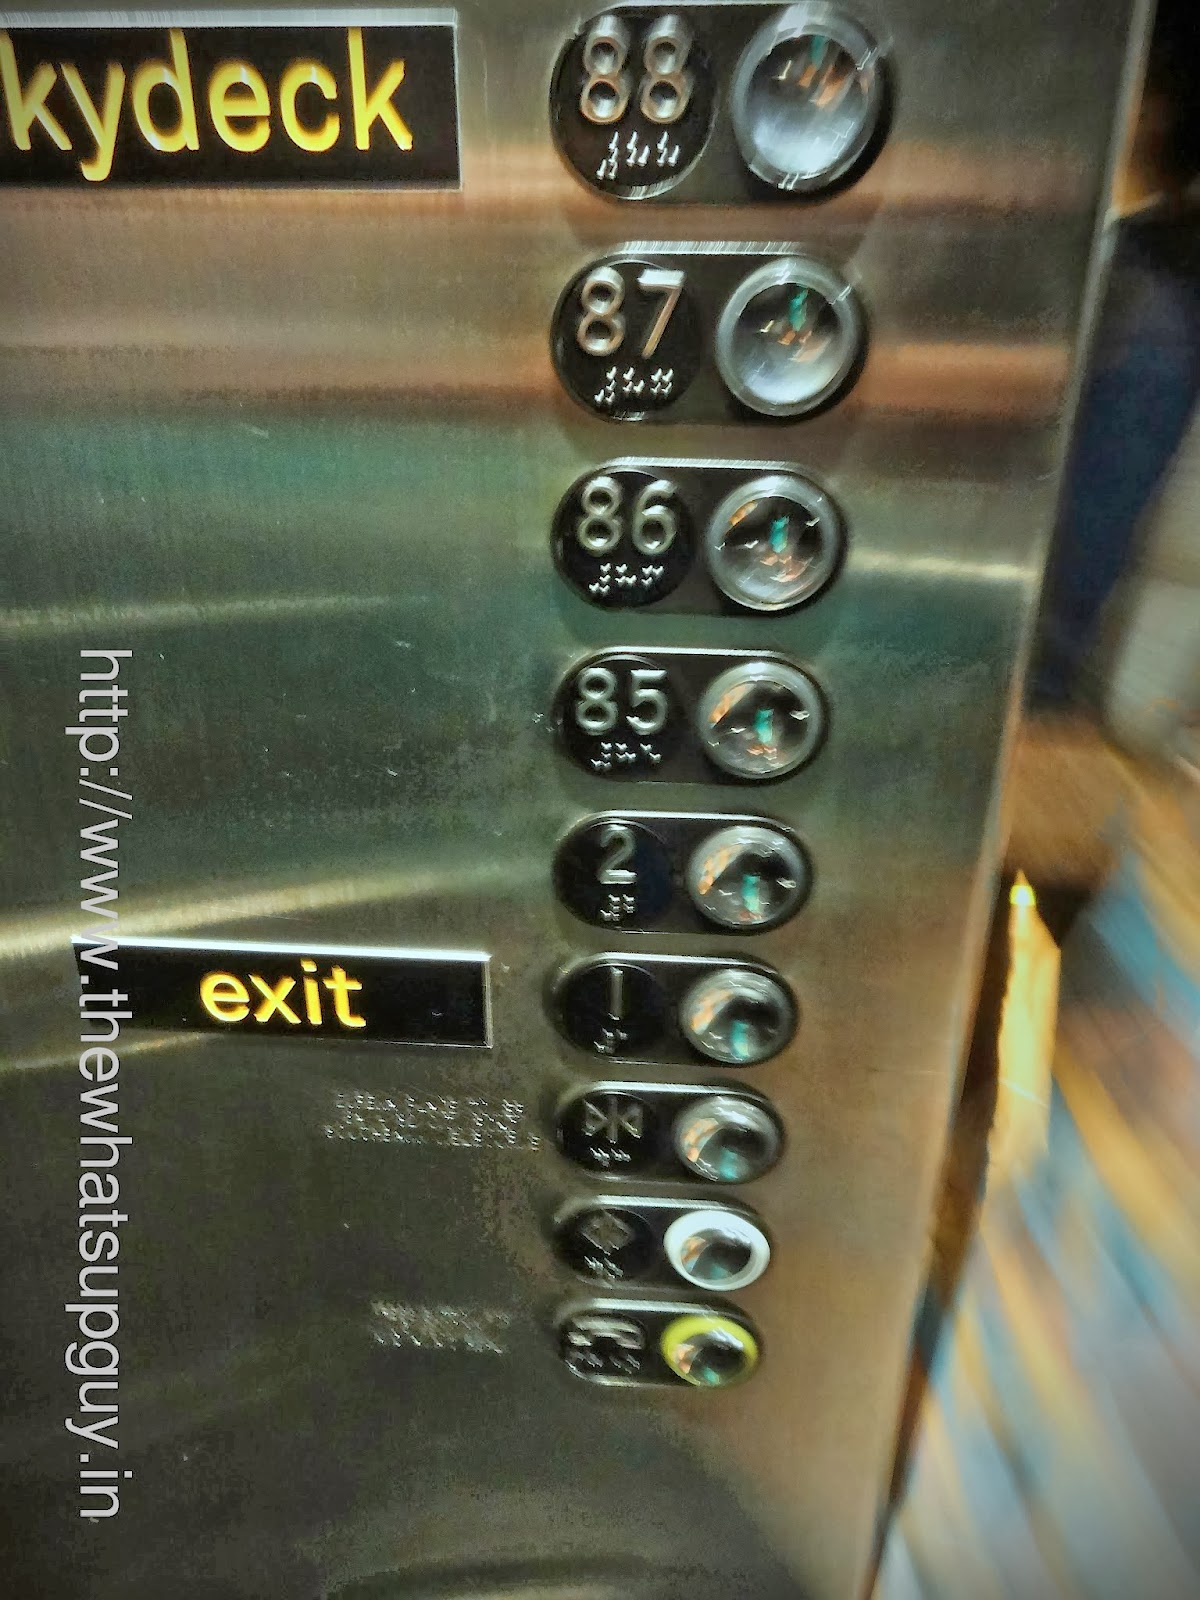 Eureka Towers Lift